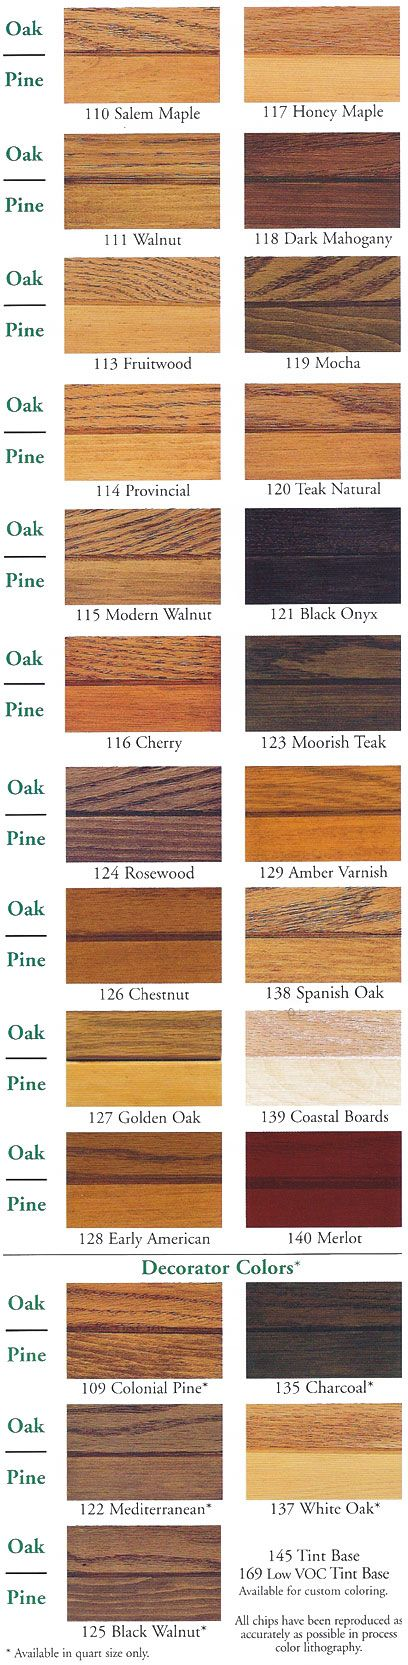 United Gilsonite Laboratories Zar 174 Wood Finishing Zar